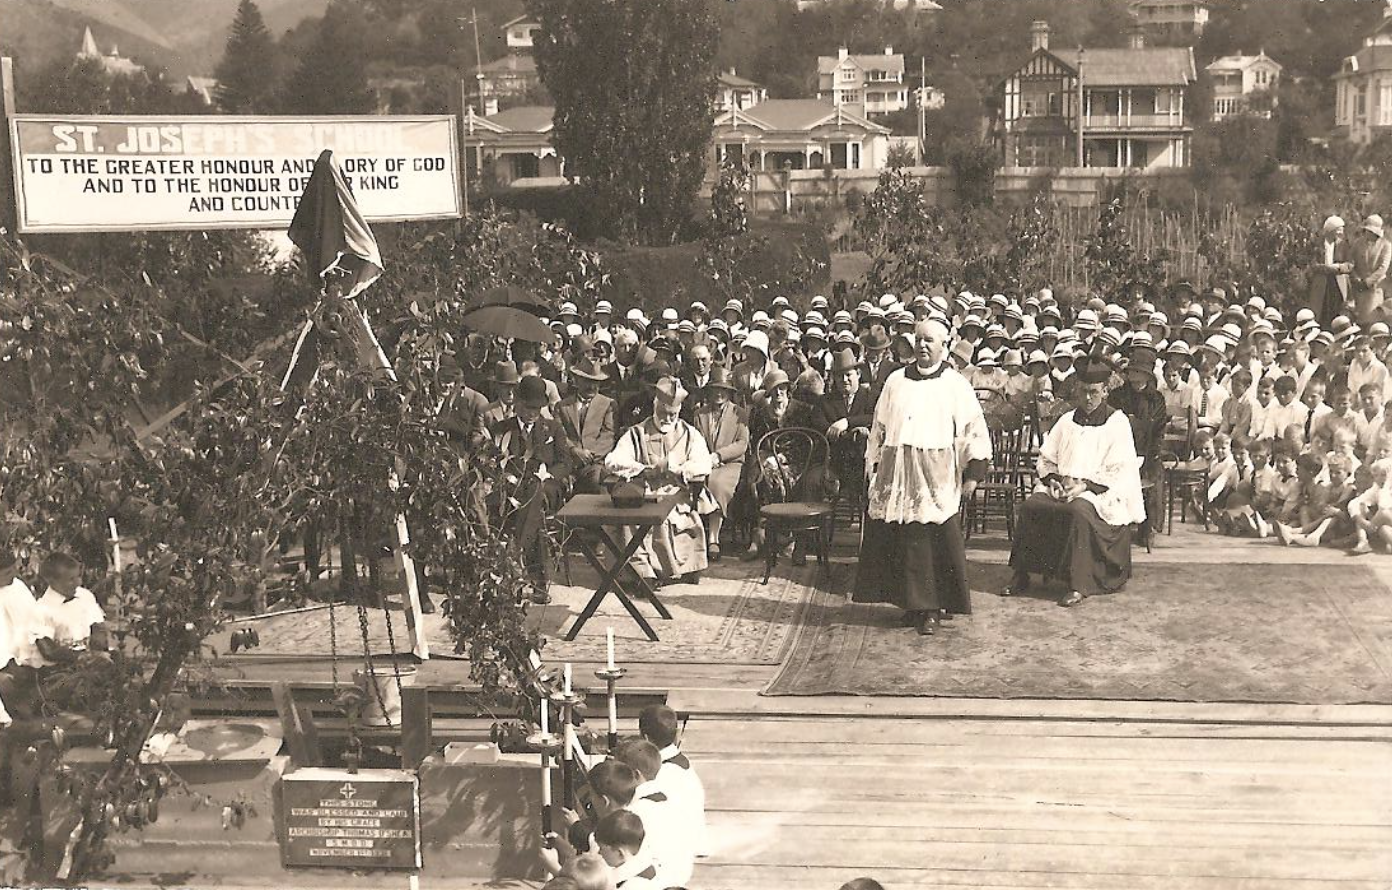 The Blessing of St Joseph's School 1932